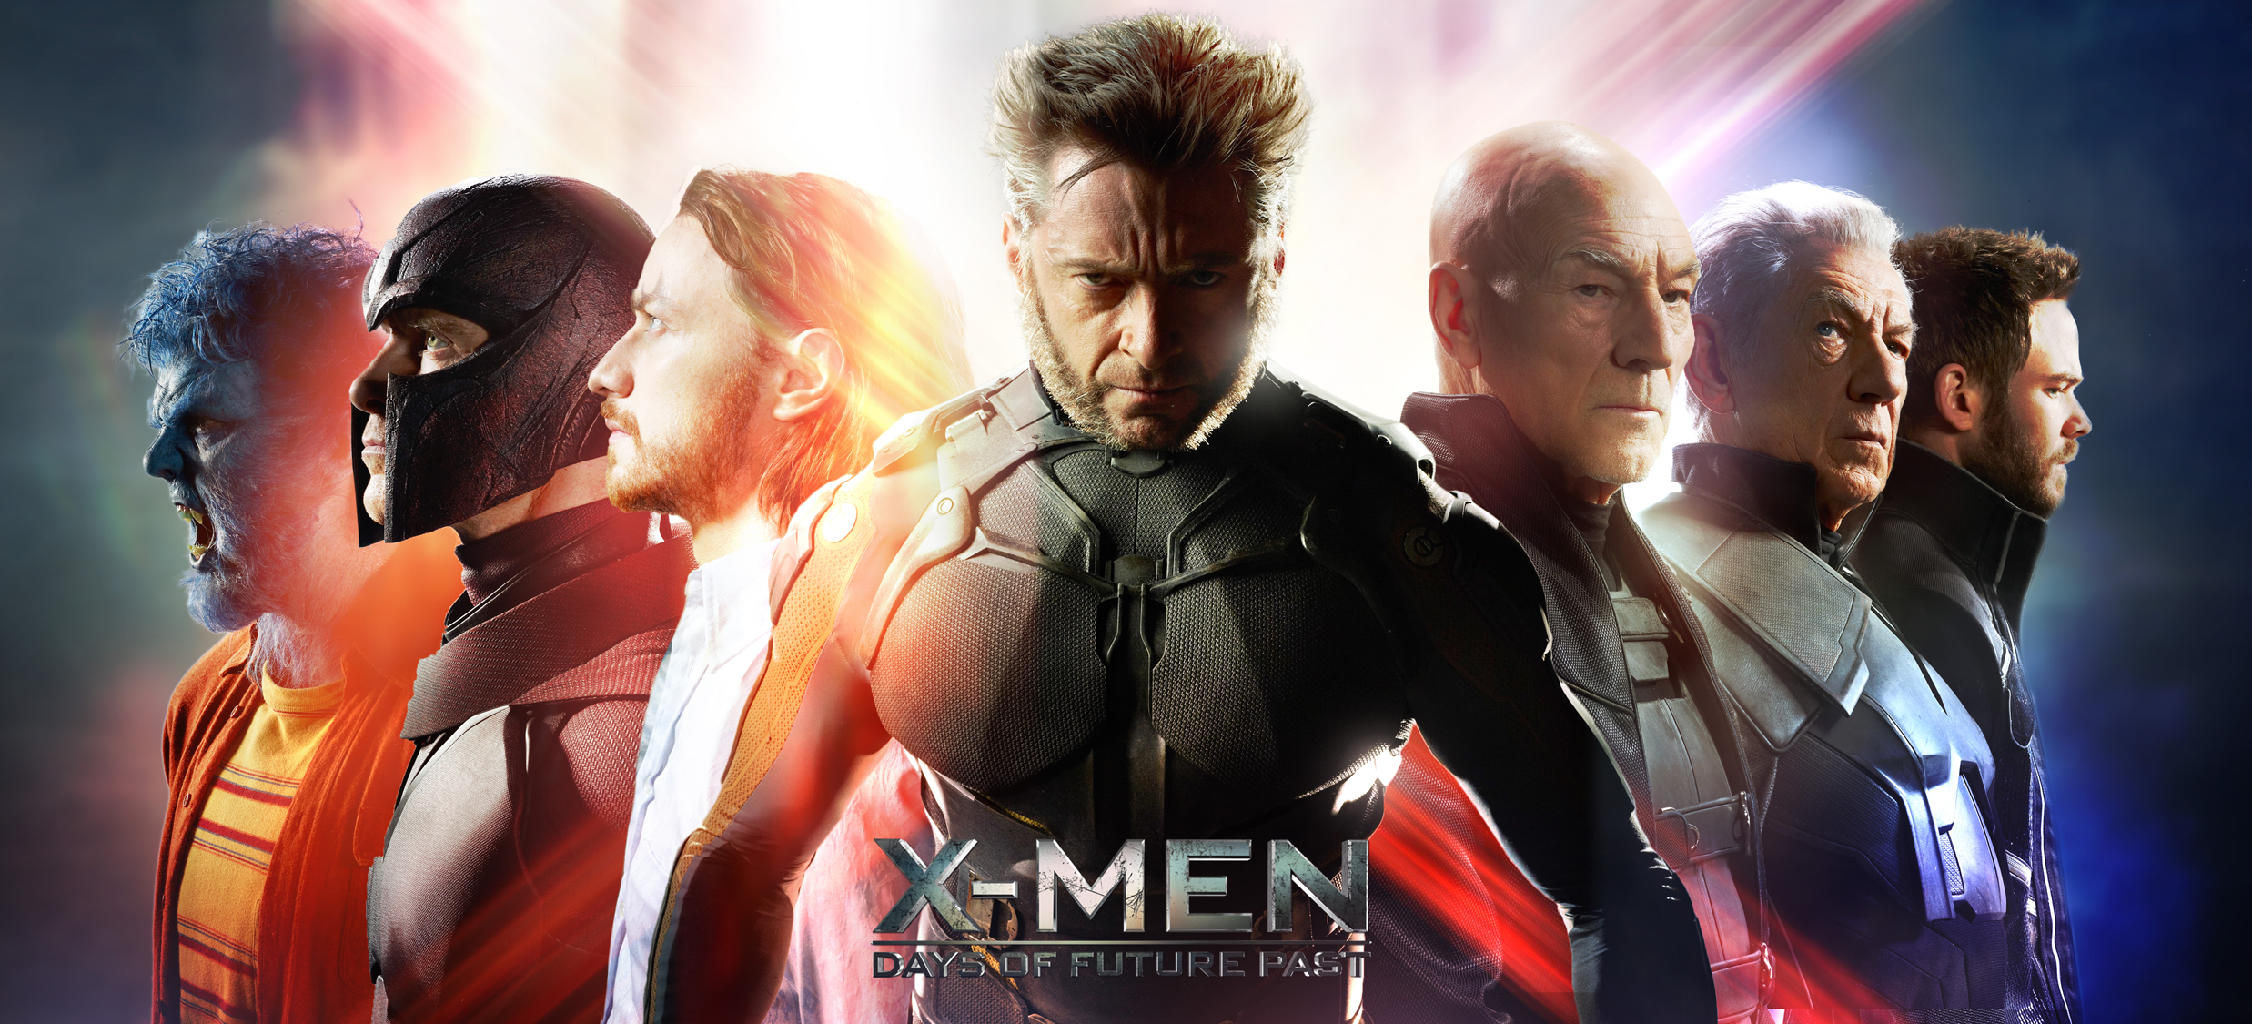 what to watch to understand x men days of future past flip the what to watch to understand x men days of future past